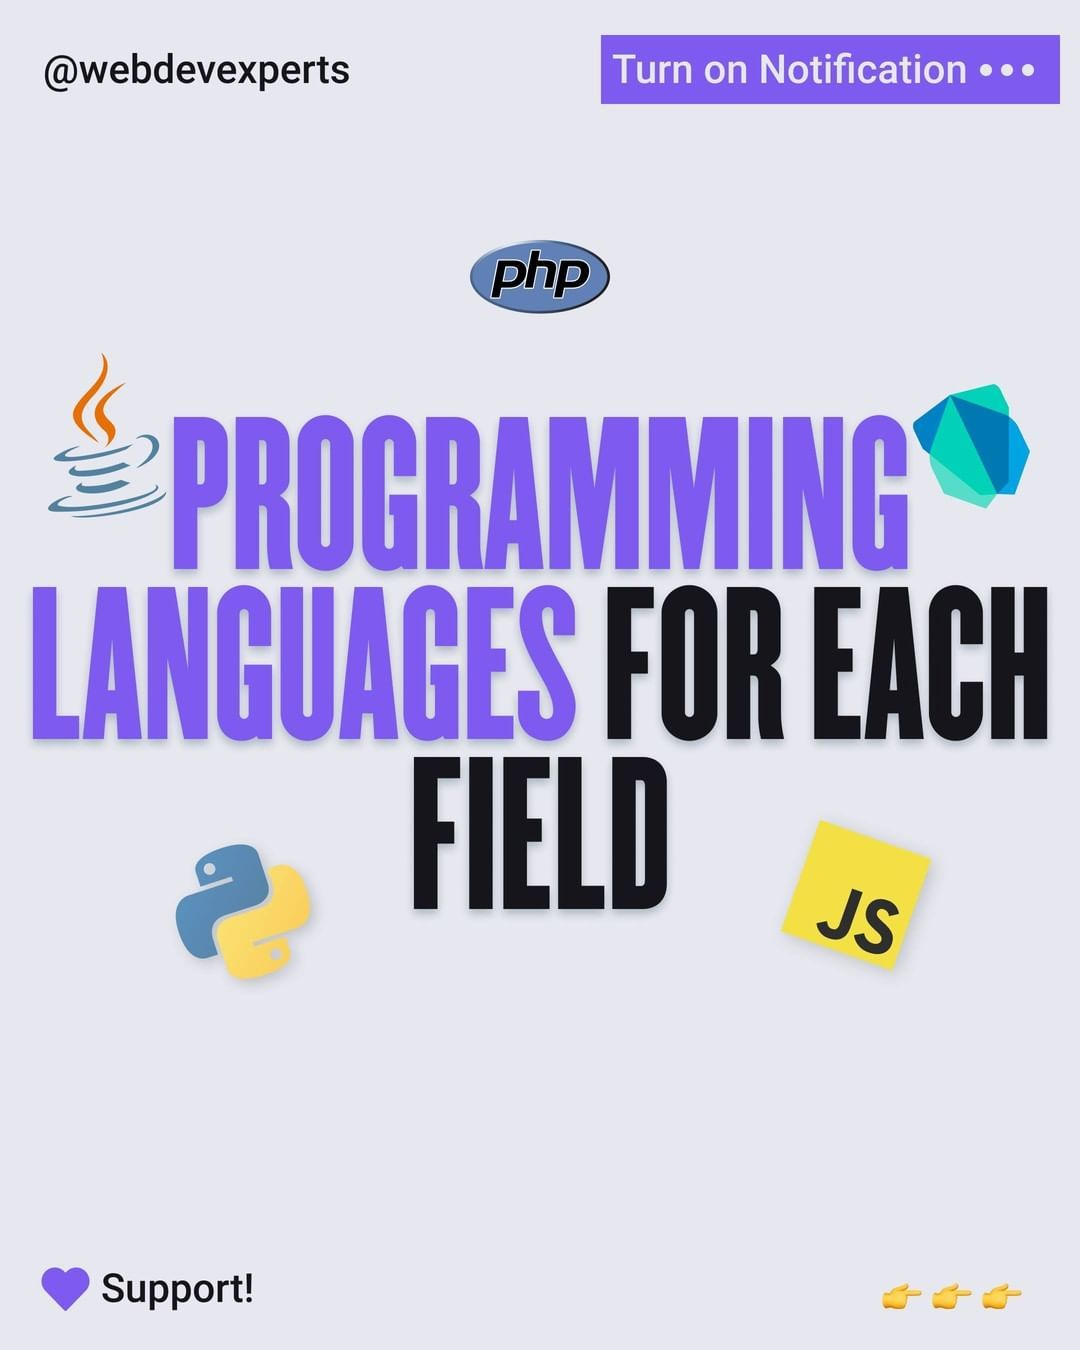 Programming languages for each field